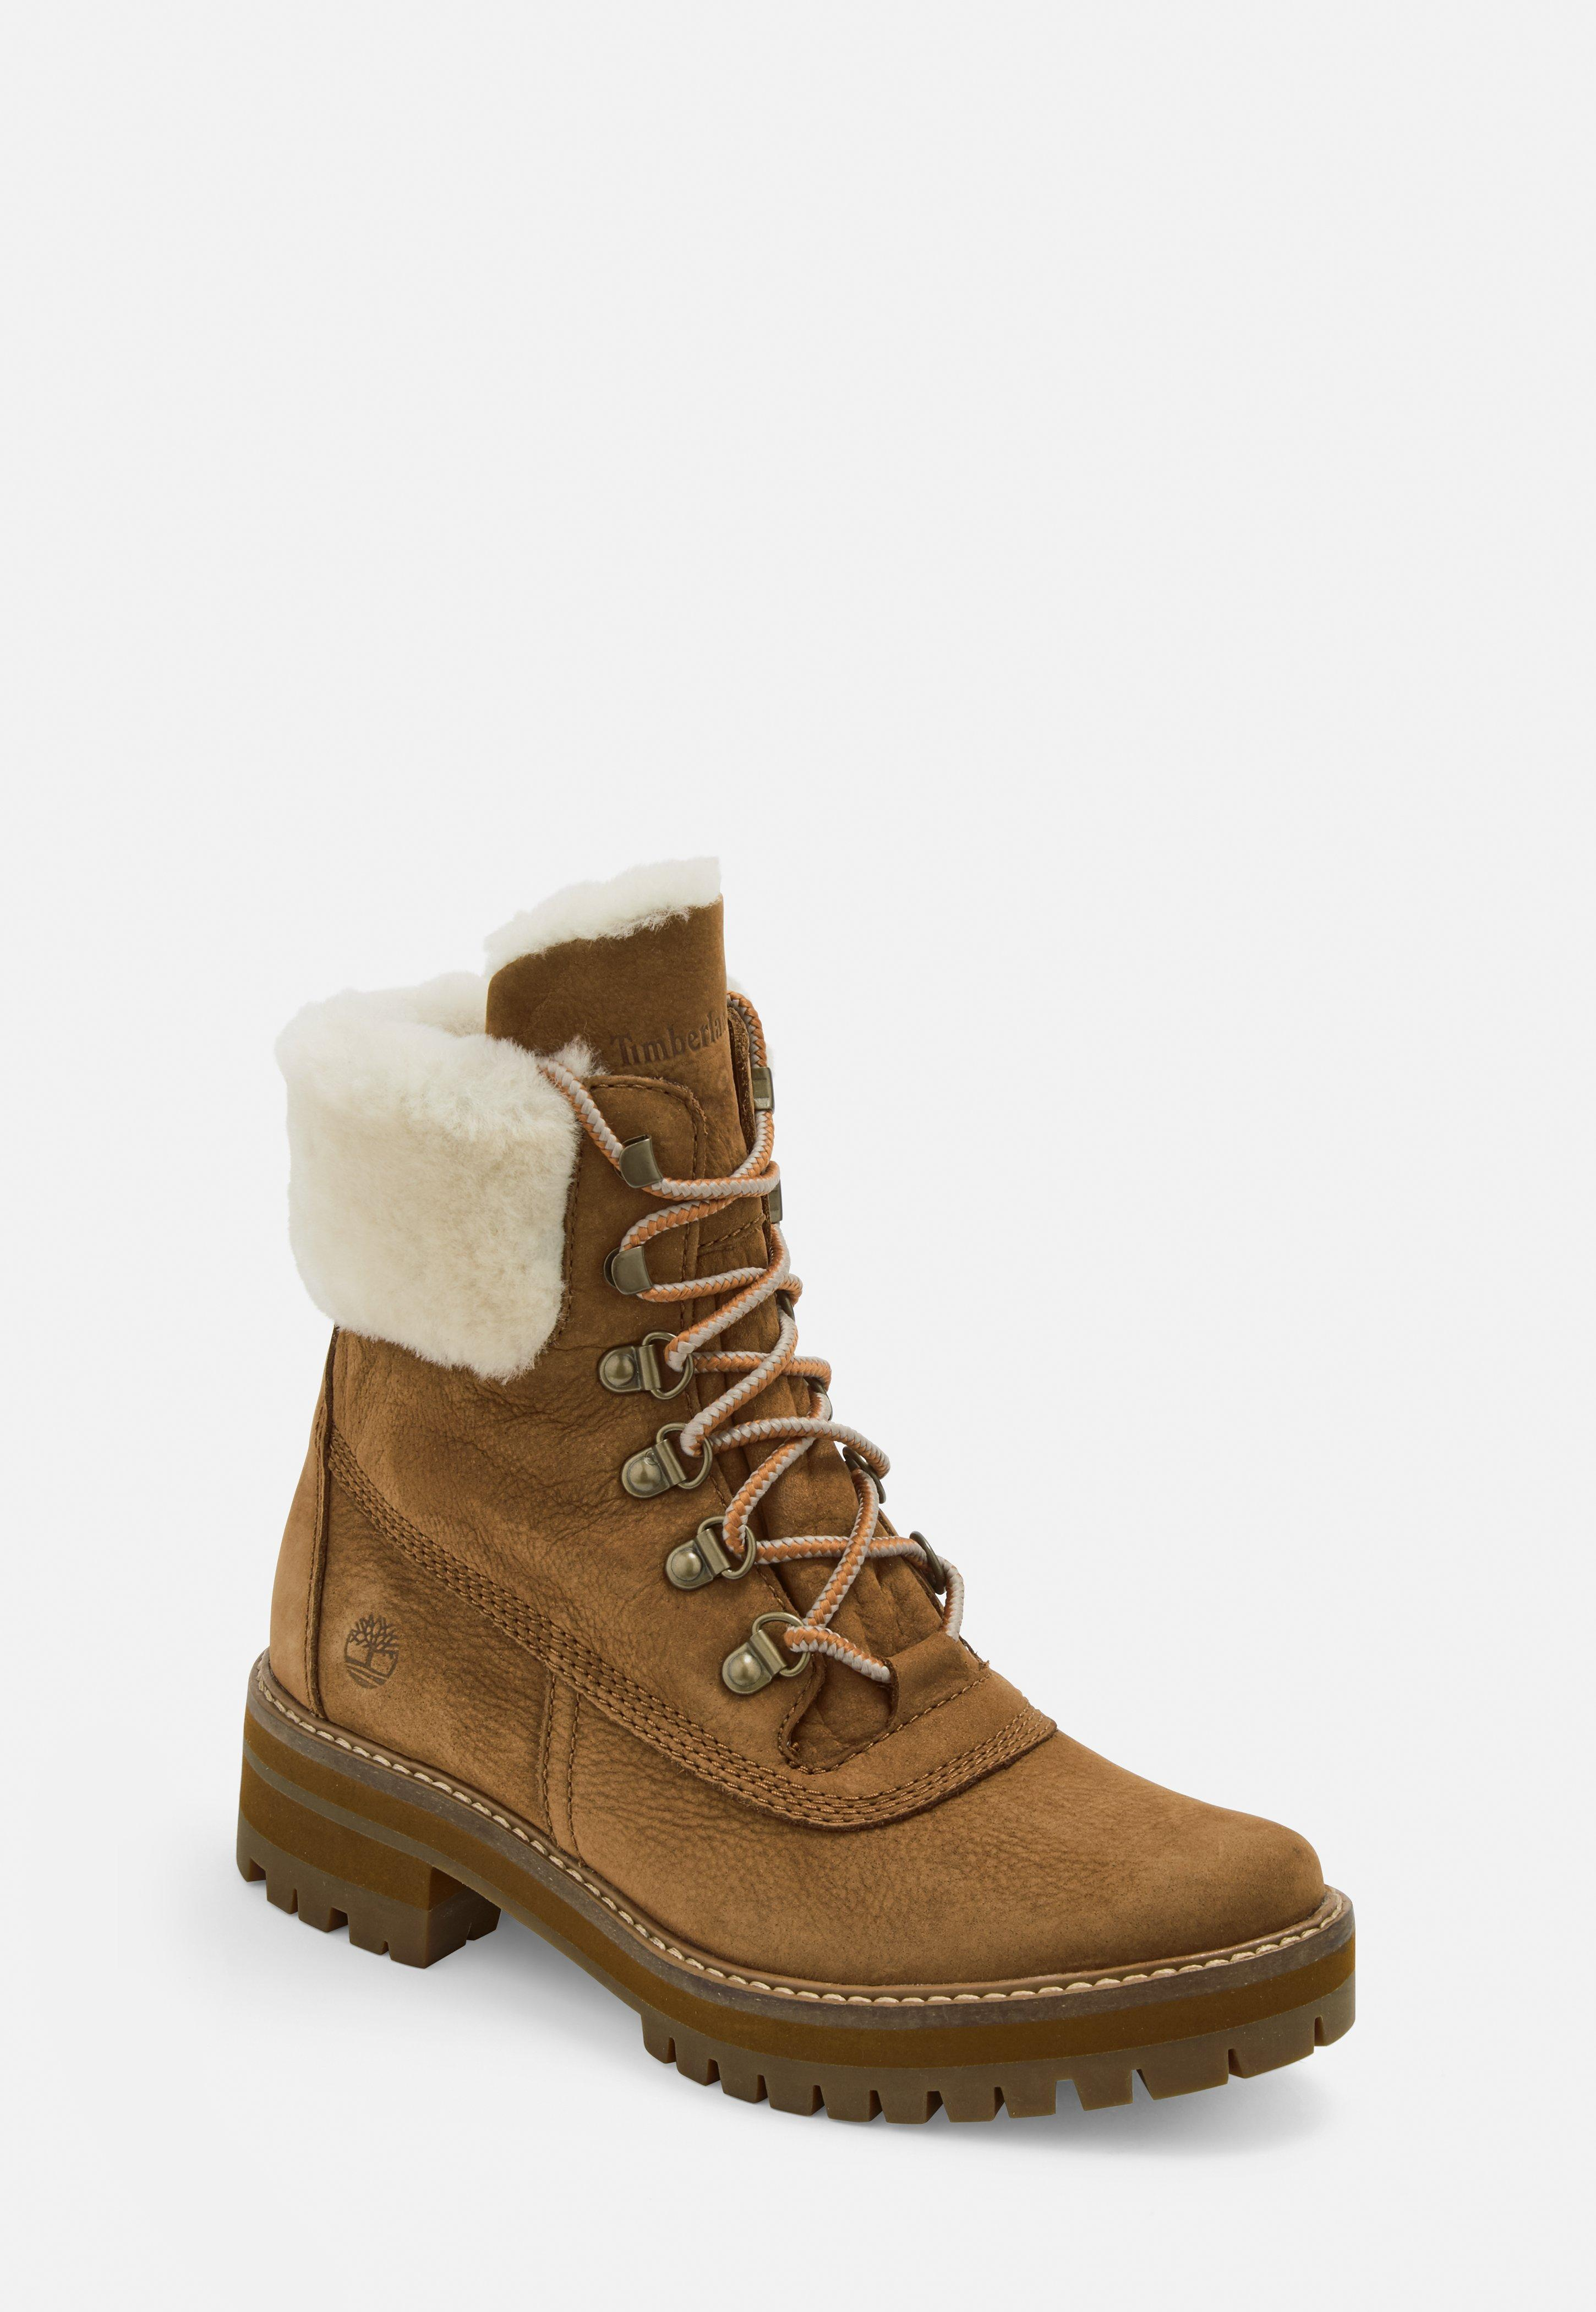 c62f28be2c6 Women s Boots